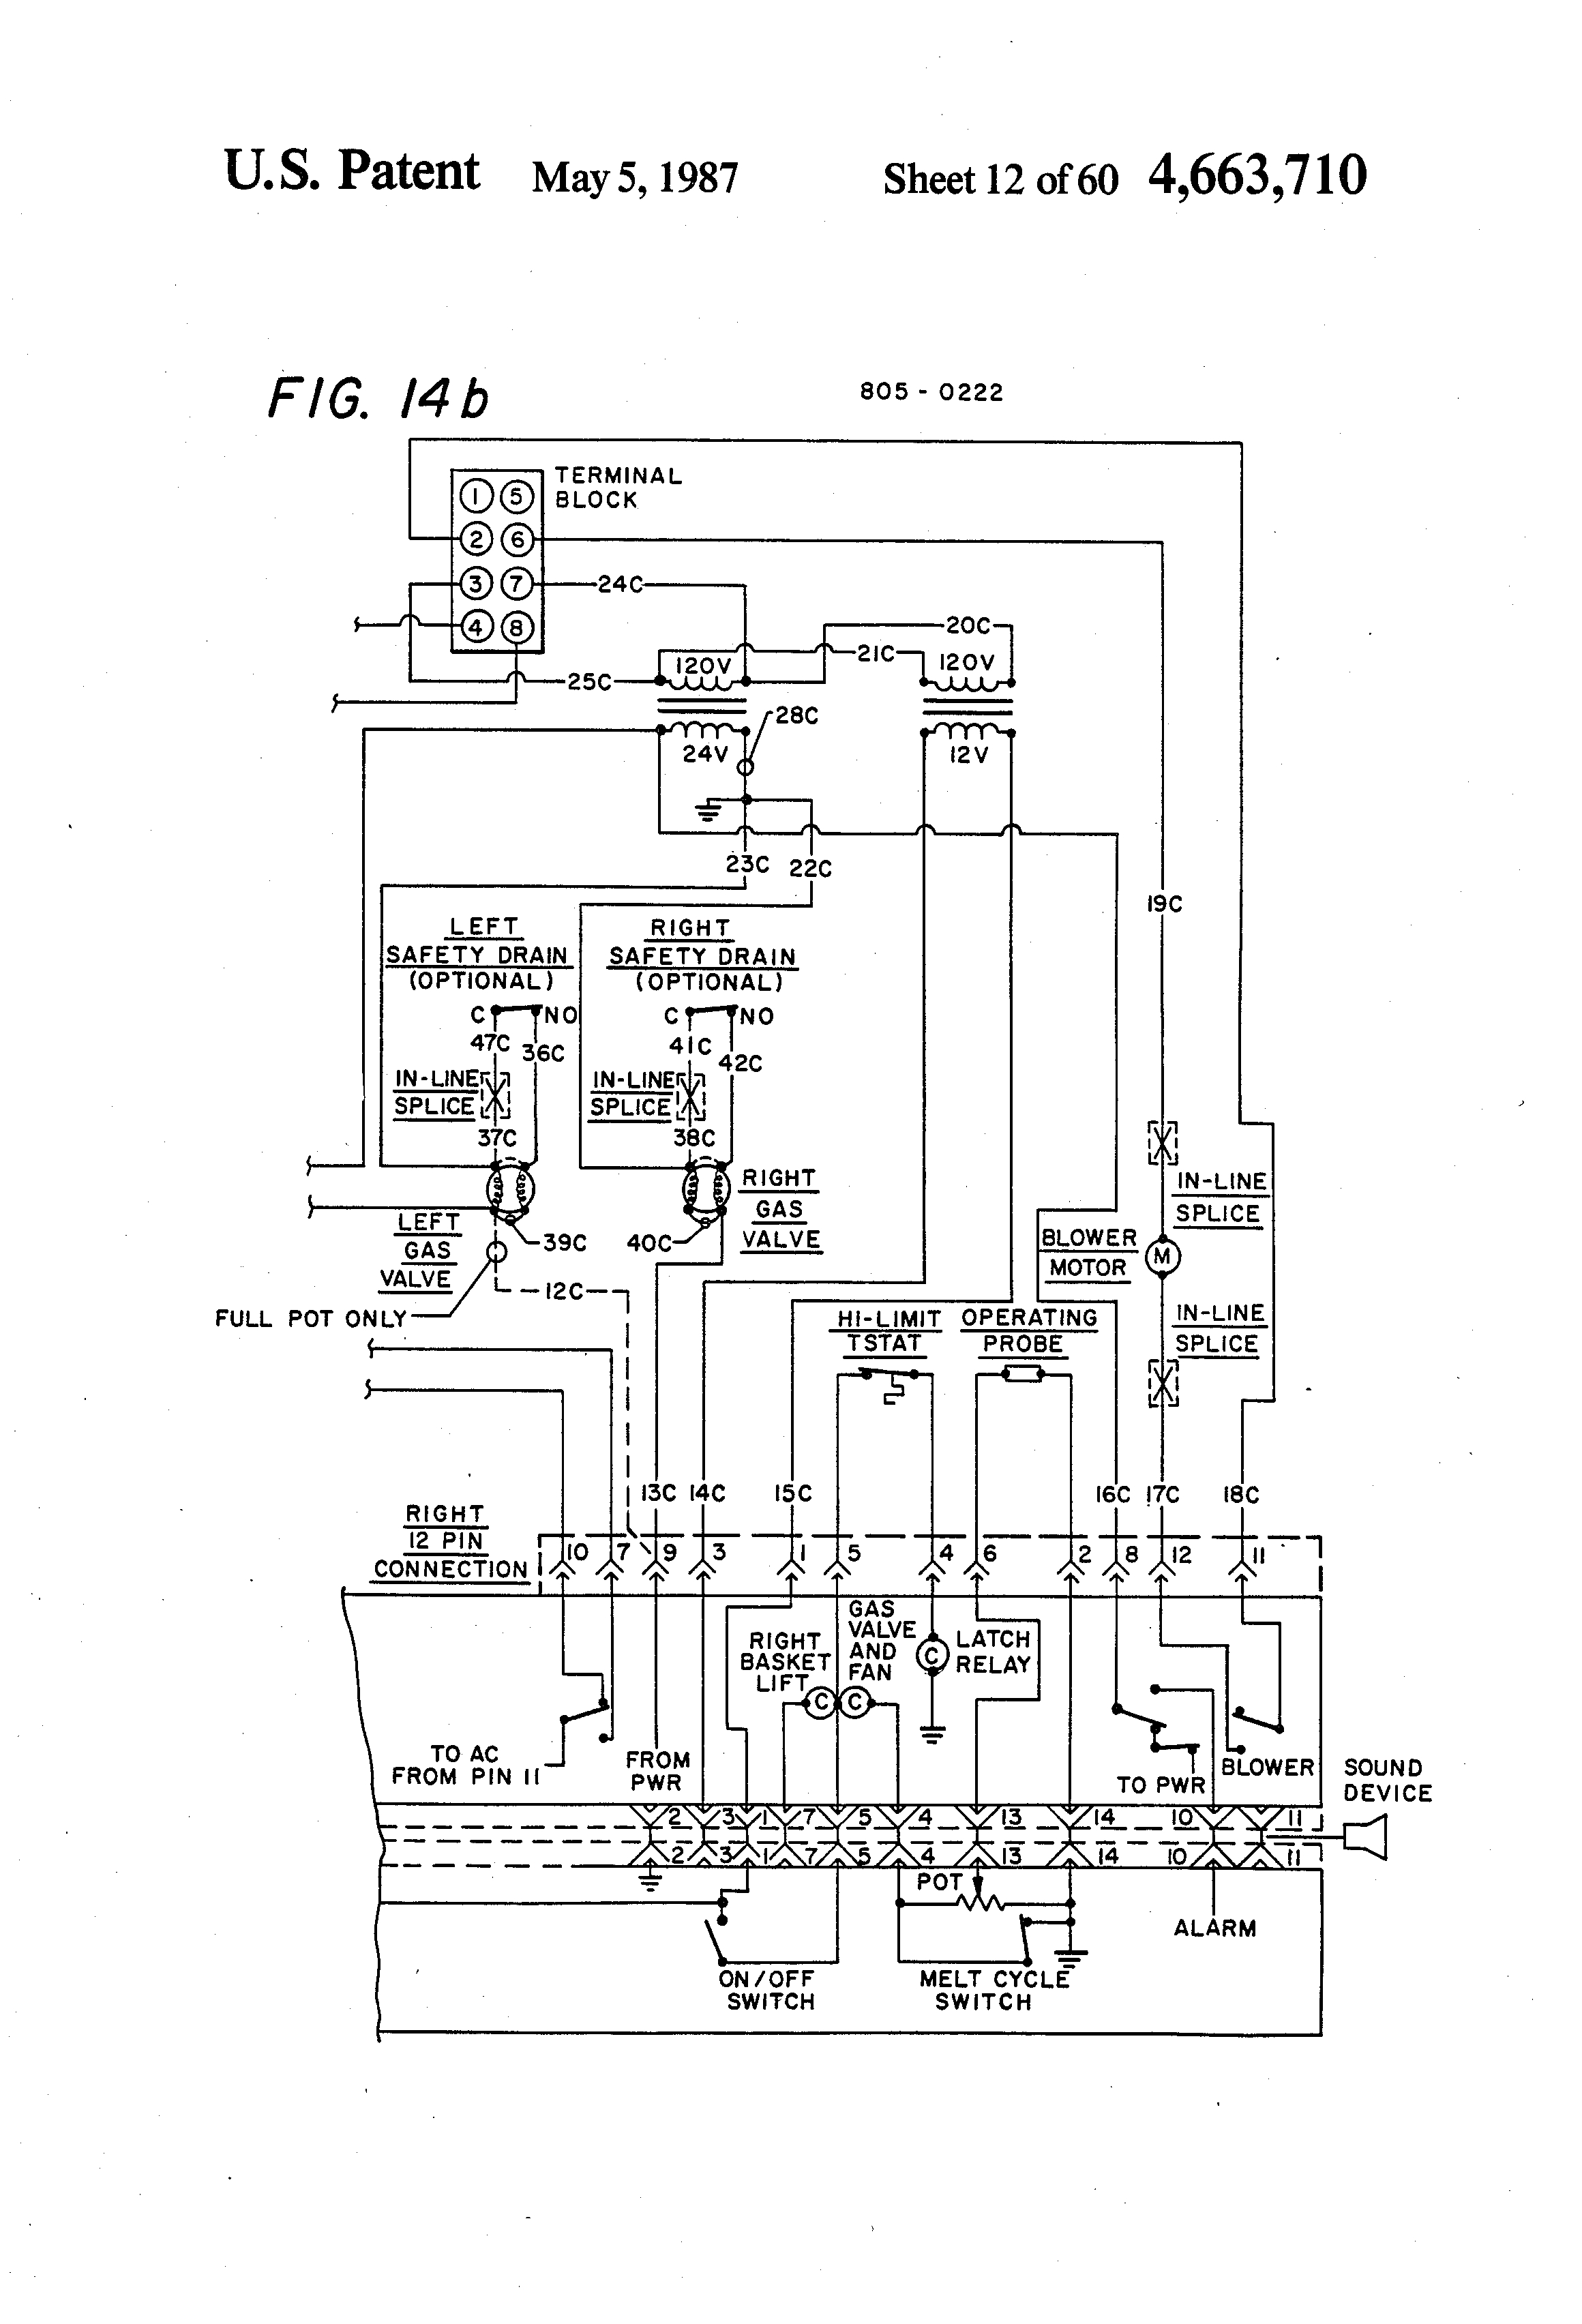 wiring diagram for breaker box to outlet